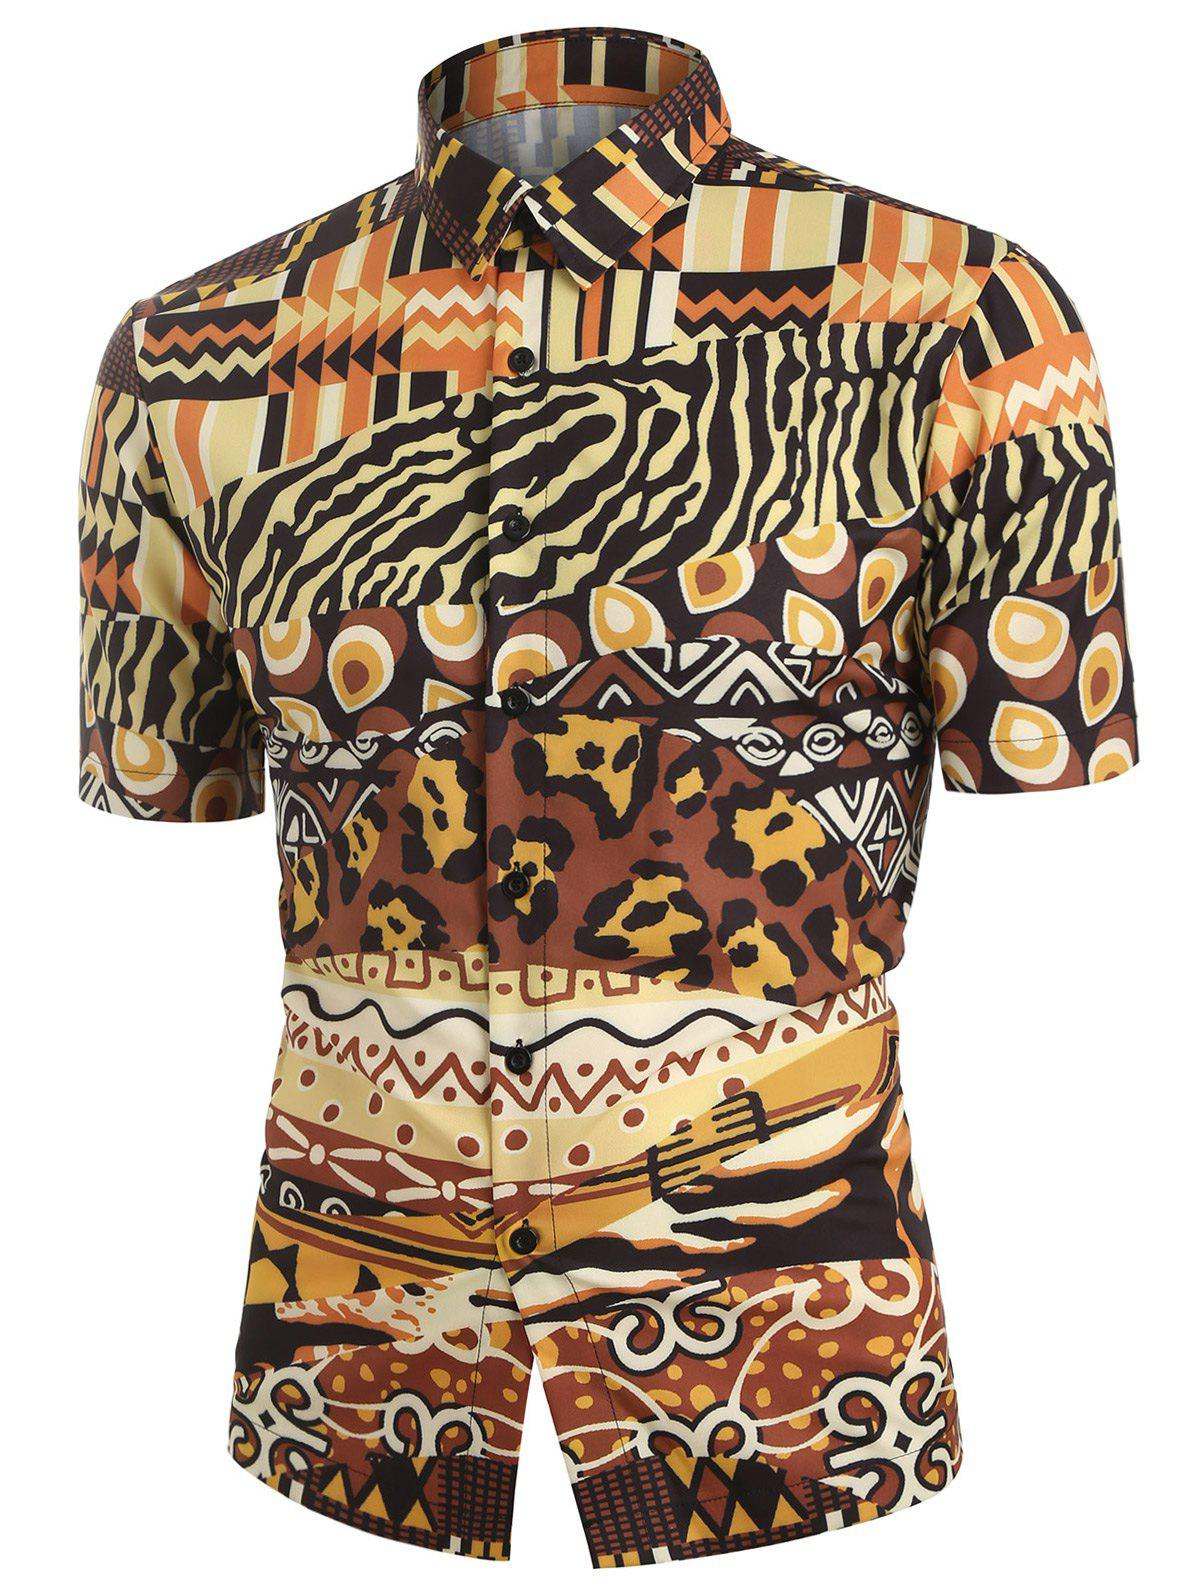 Online Leopard Animal Print Short Sleeves Shirt